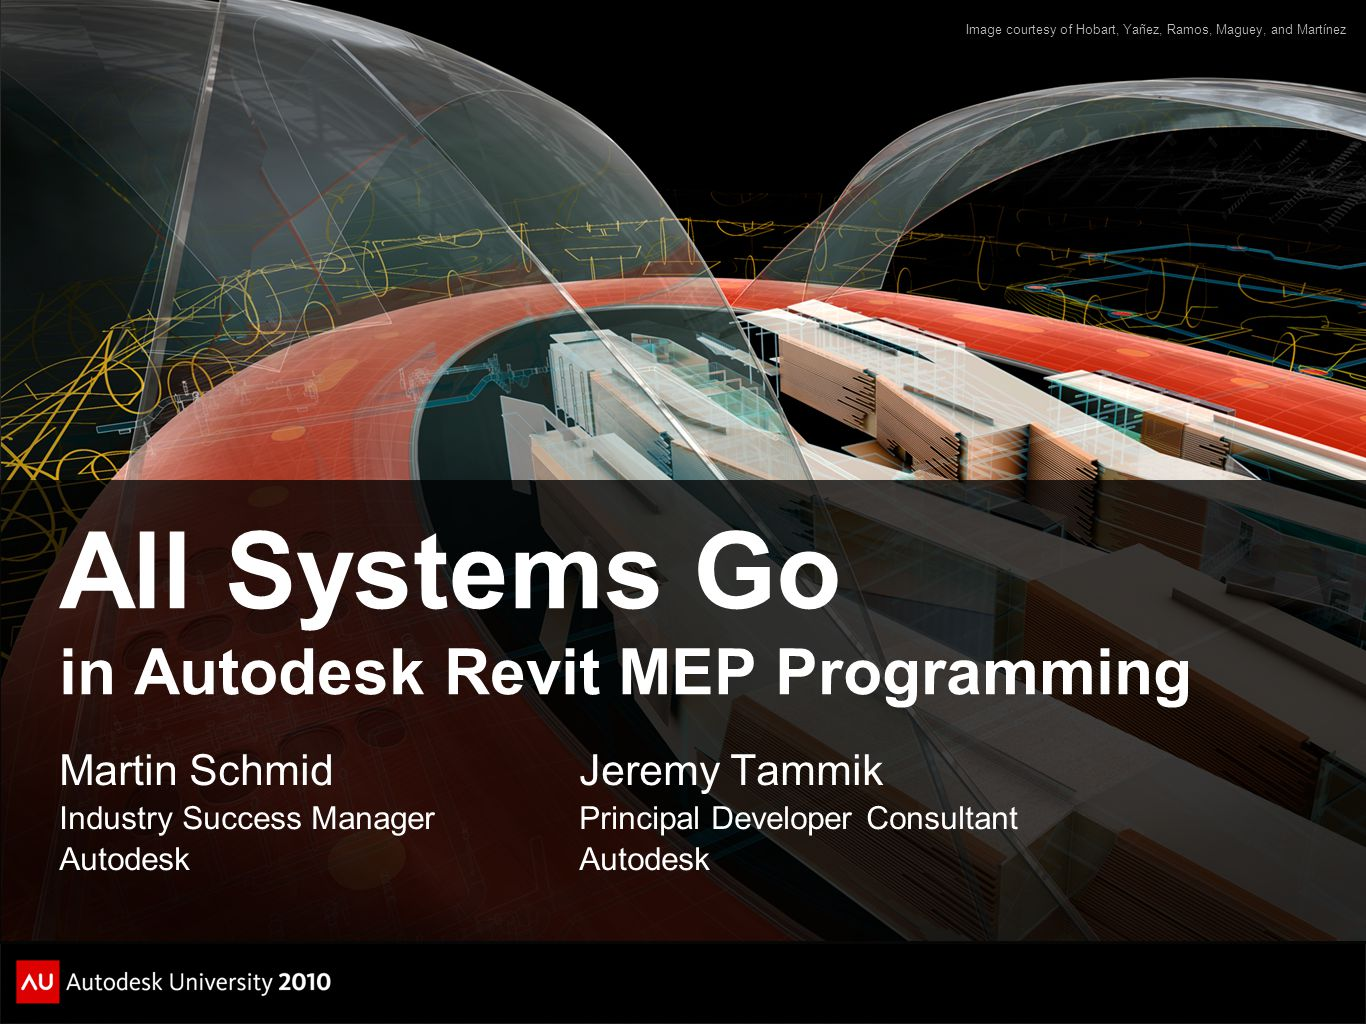 All Systems Go in Autodesk Revit MEP Programming Martin Schmid Industry Success Manager Autodesk Image courtesy of Hobart, Yañez, Ramos, Maguey, and